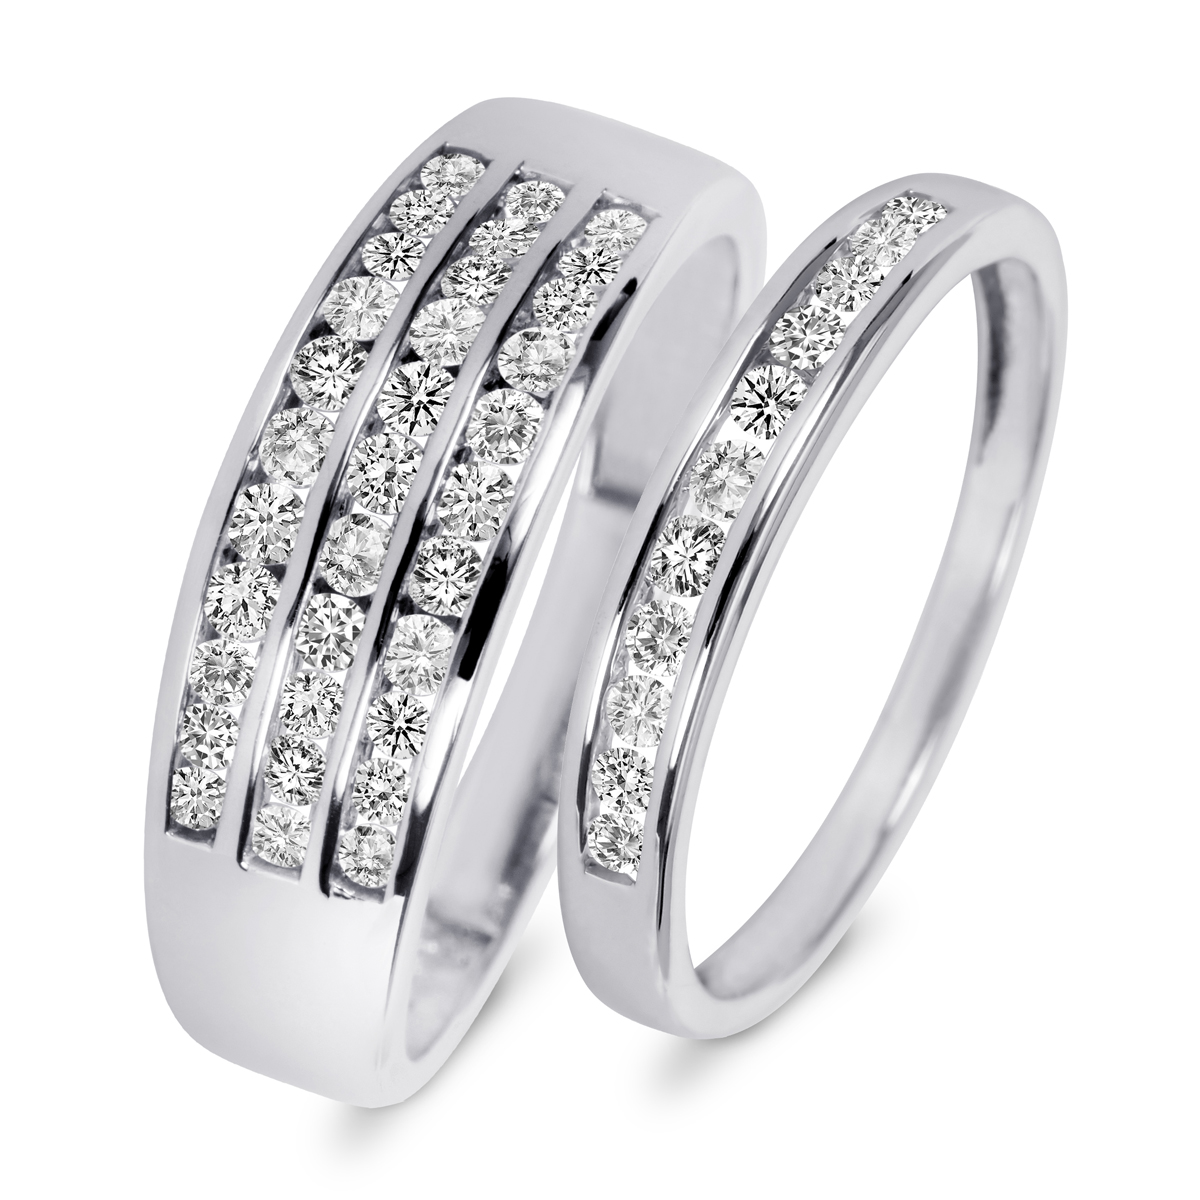 7 8 carat t w diamond his and hers wedding rings 14k white gold